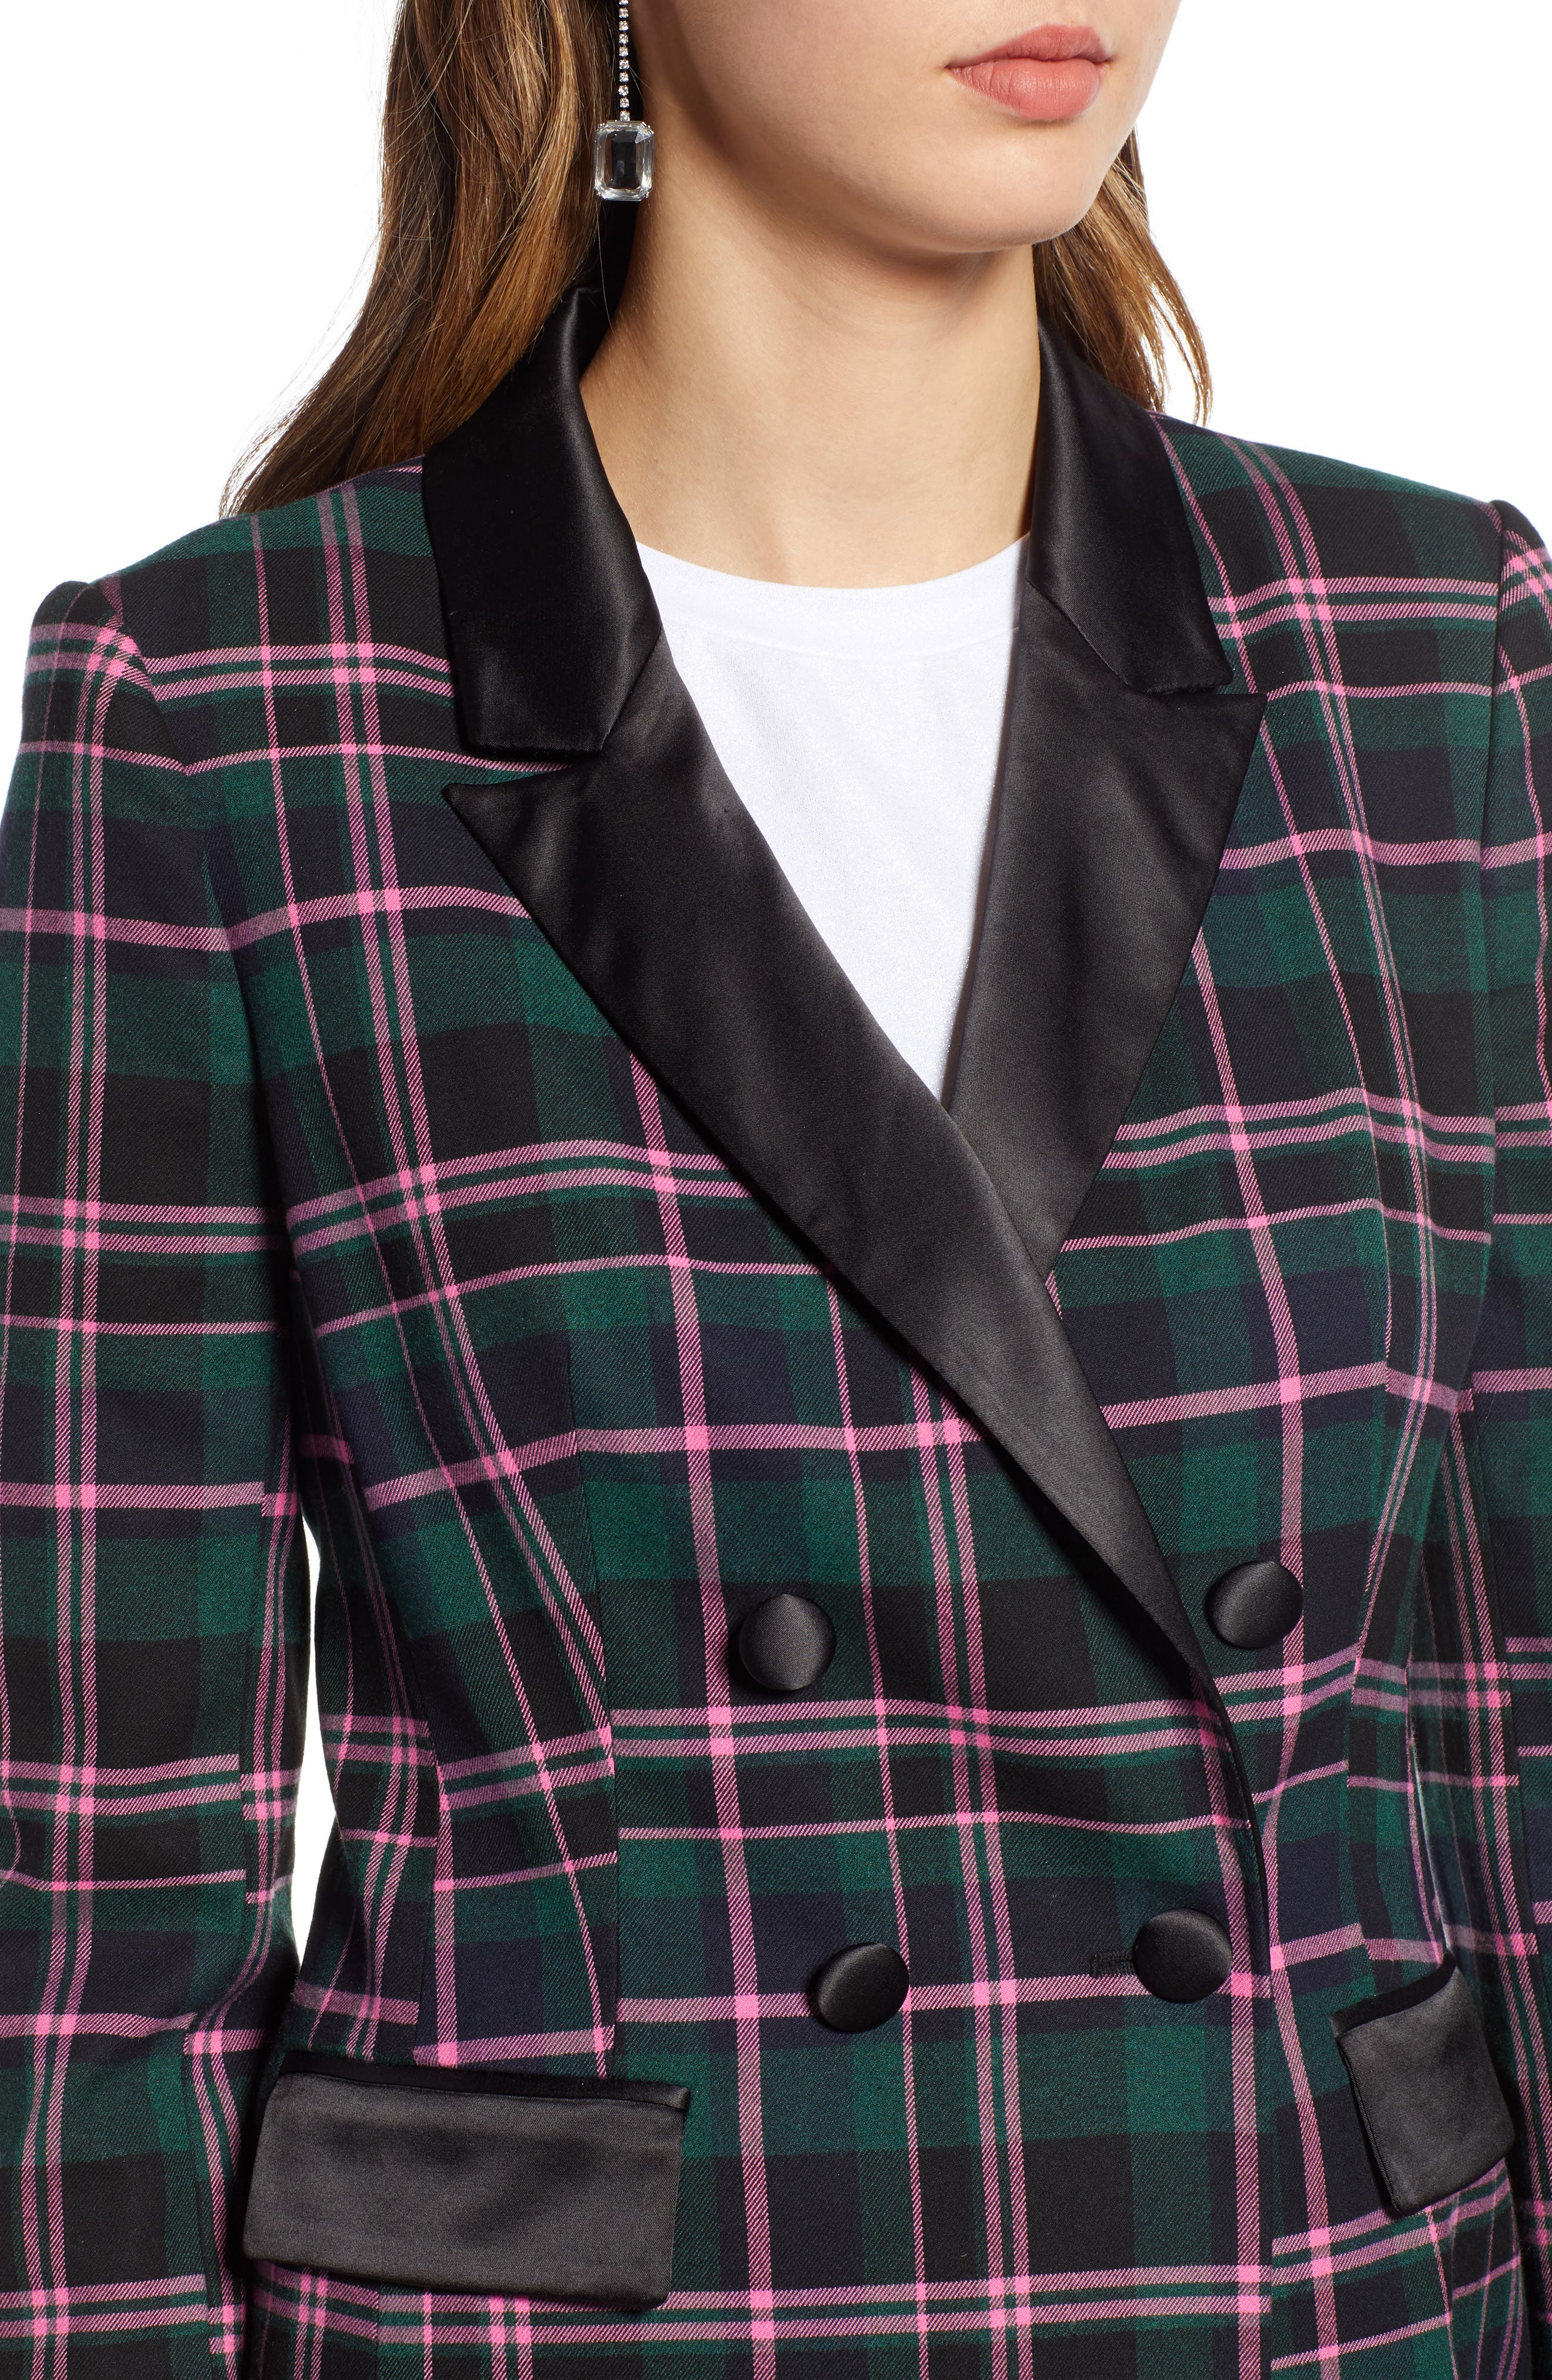 Double Breasted Plaid Blazer,                             Alternate thumbnail 4, color,                             301